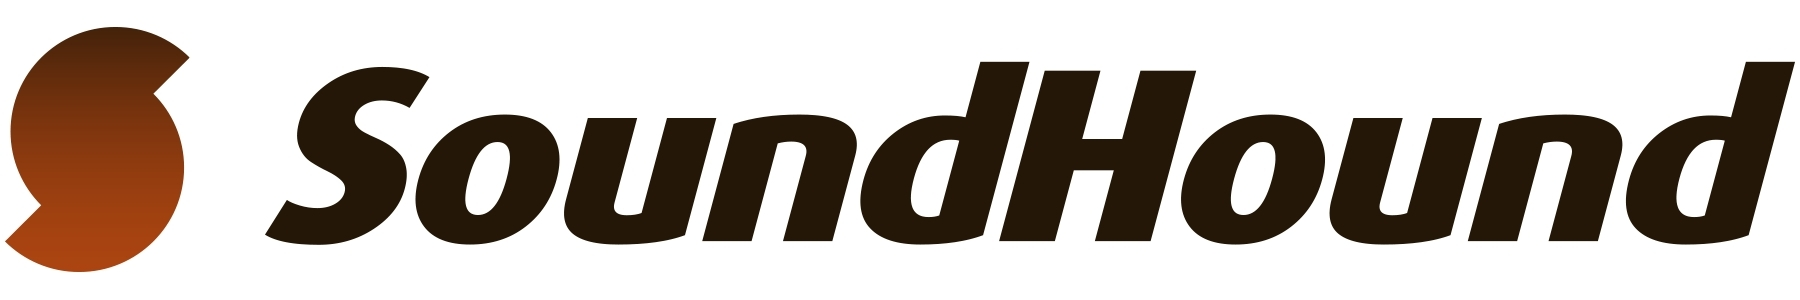 SoundHound First Music Discovery Service to Be Live on